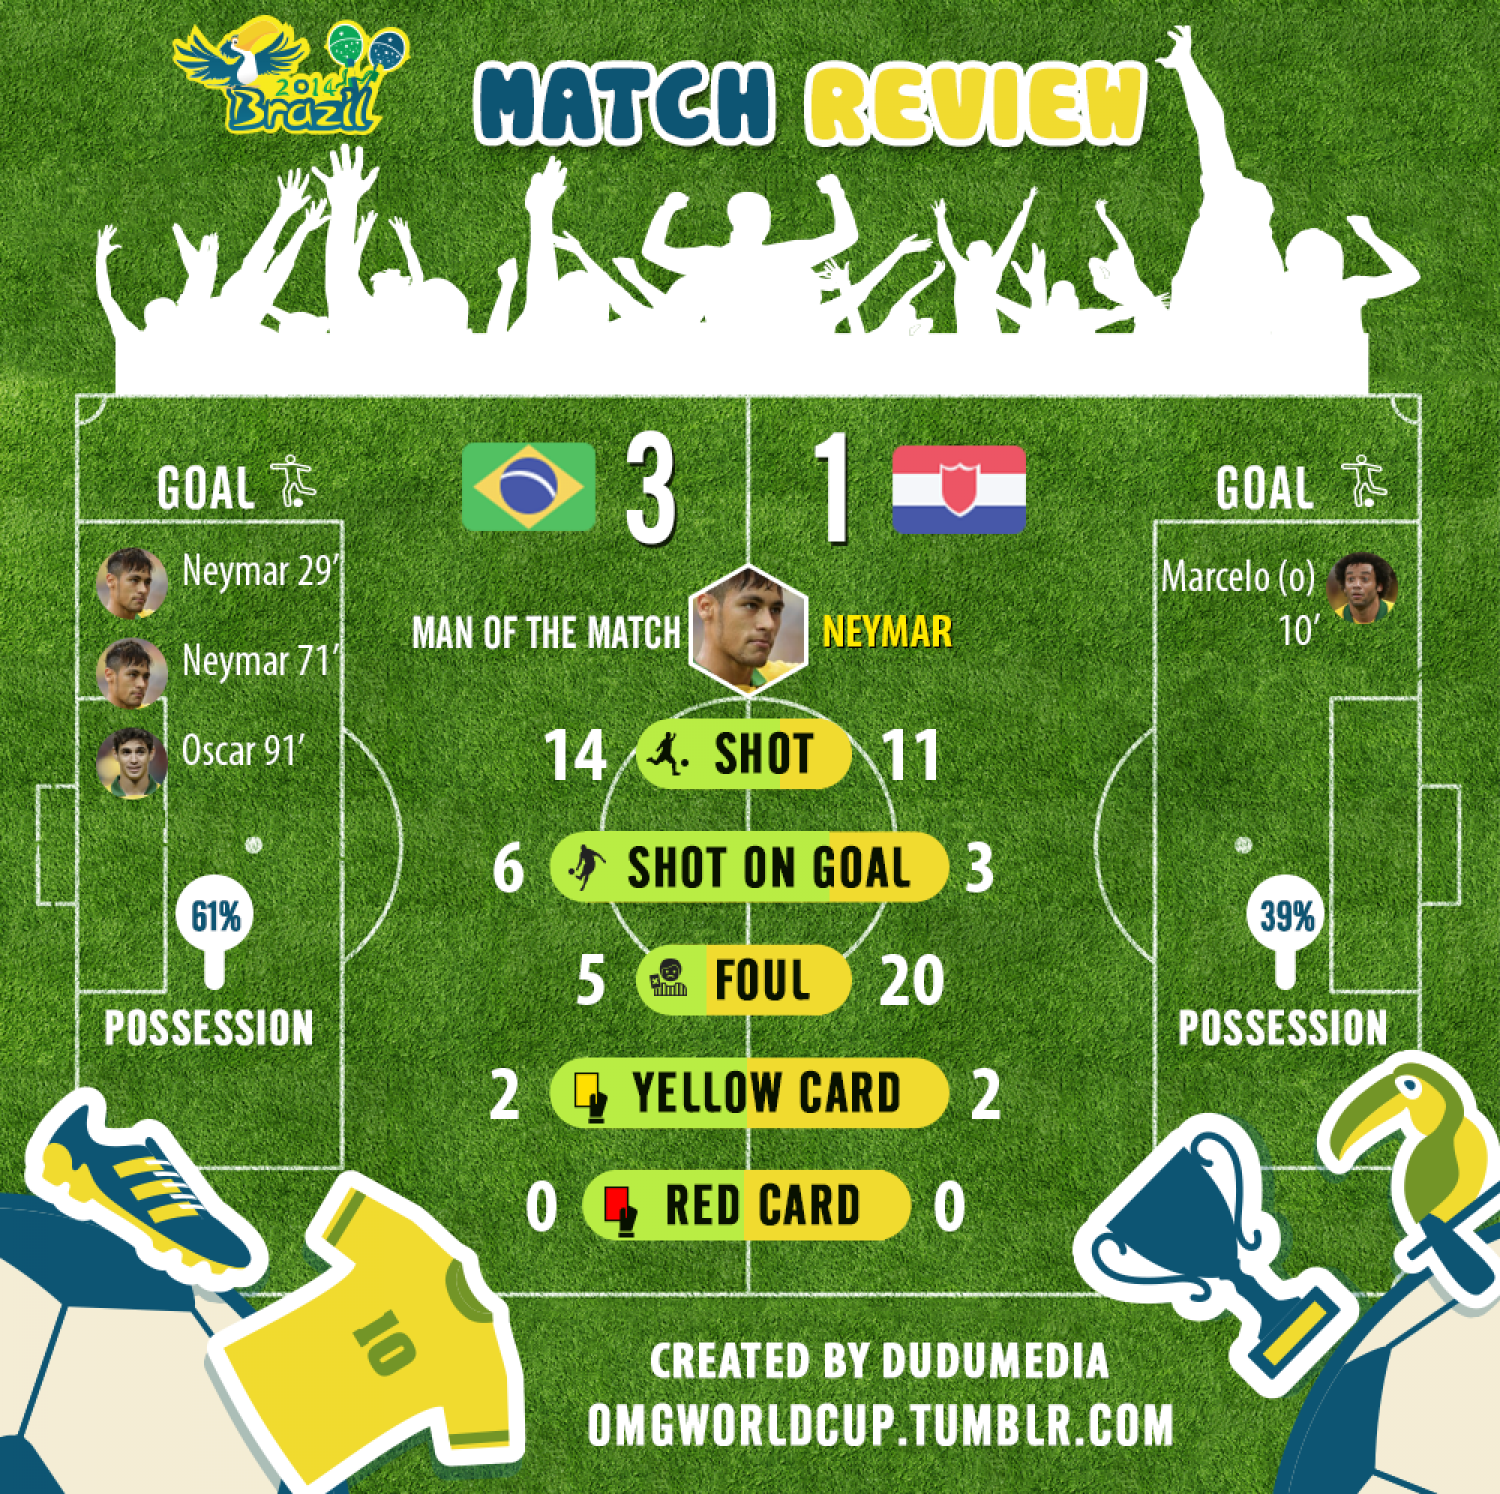 World Cup 2014 - Match Review: Brazil vs Croatia Infographic